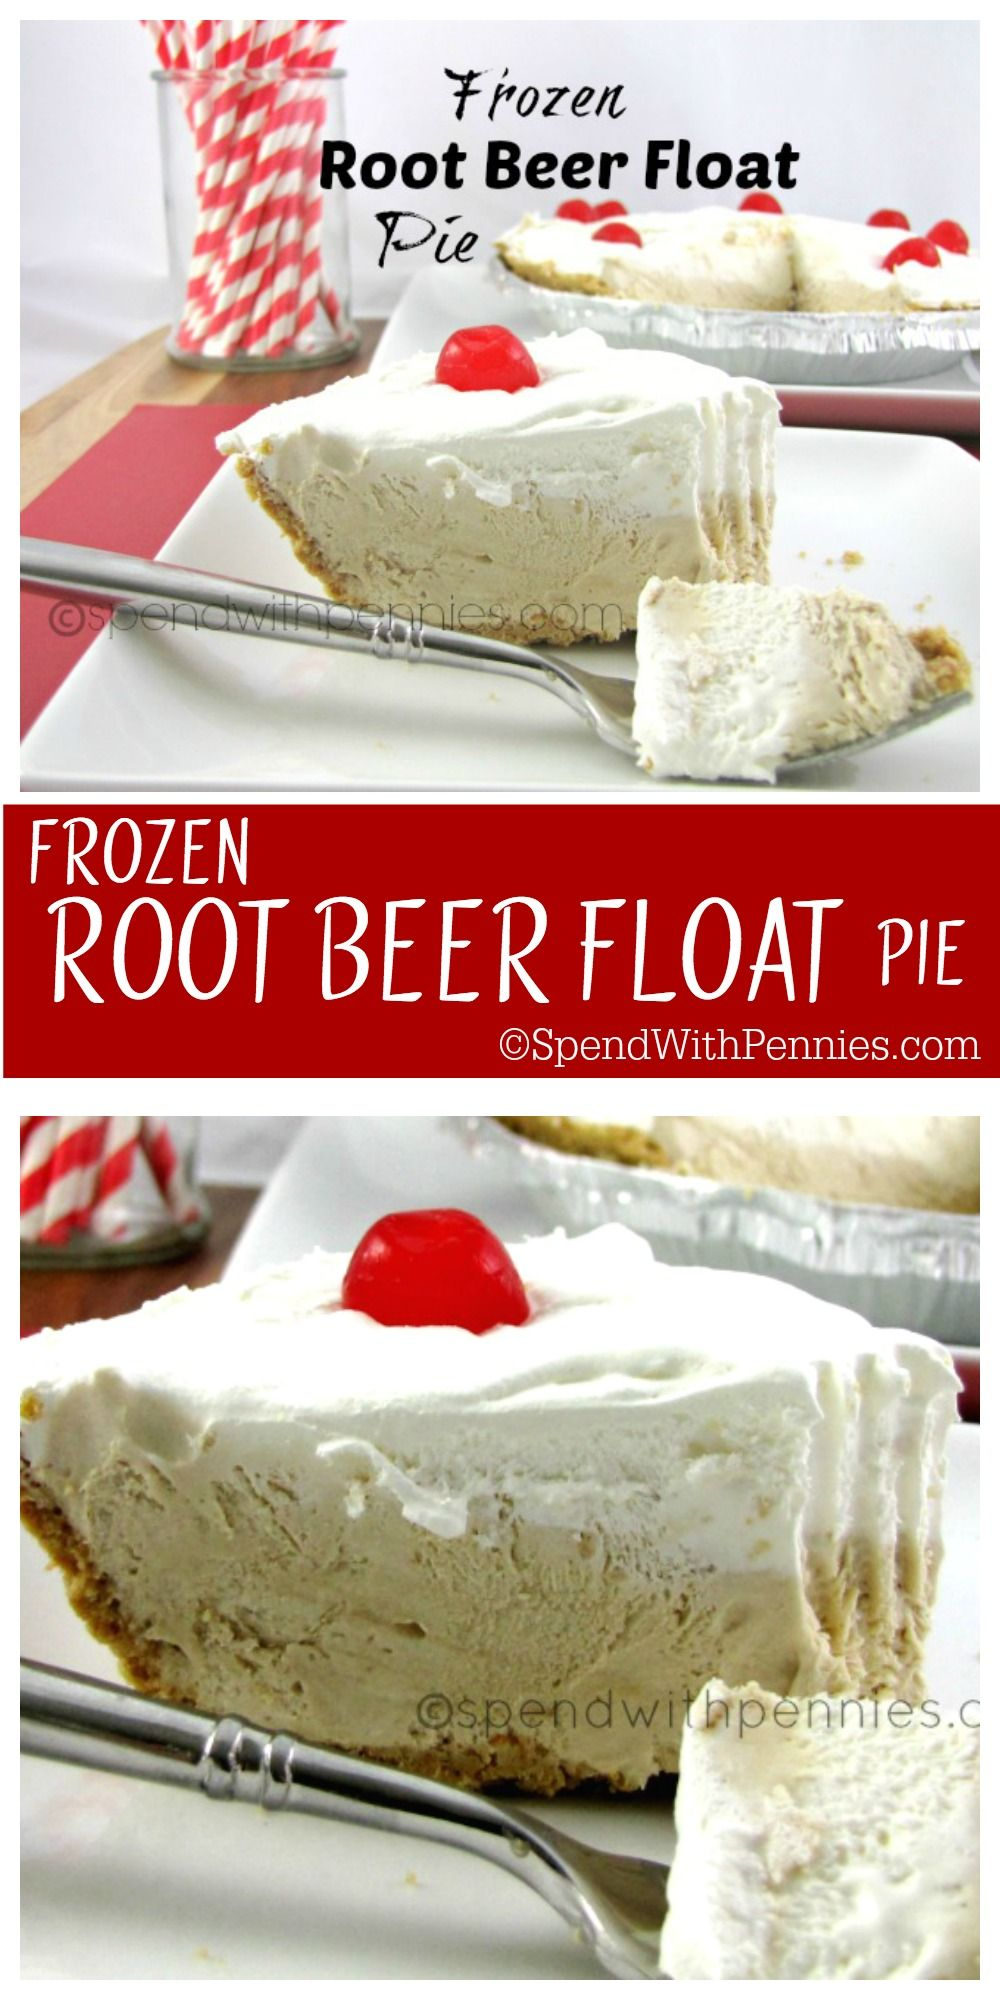 Frozen Root Beer Float Pie - Spend With Pennies